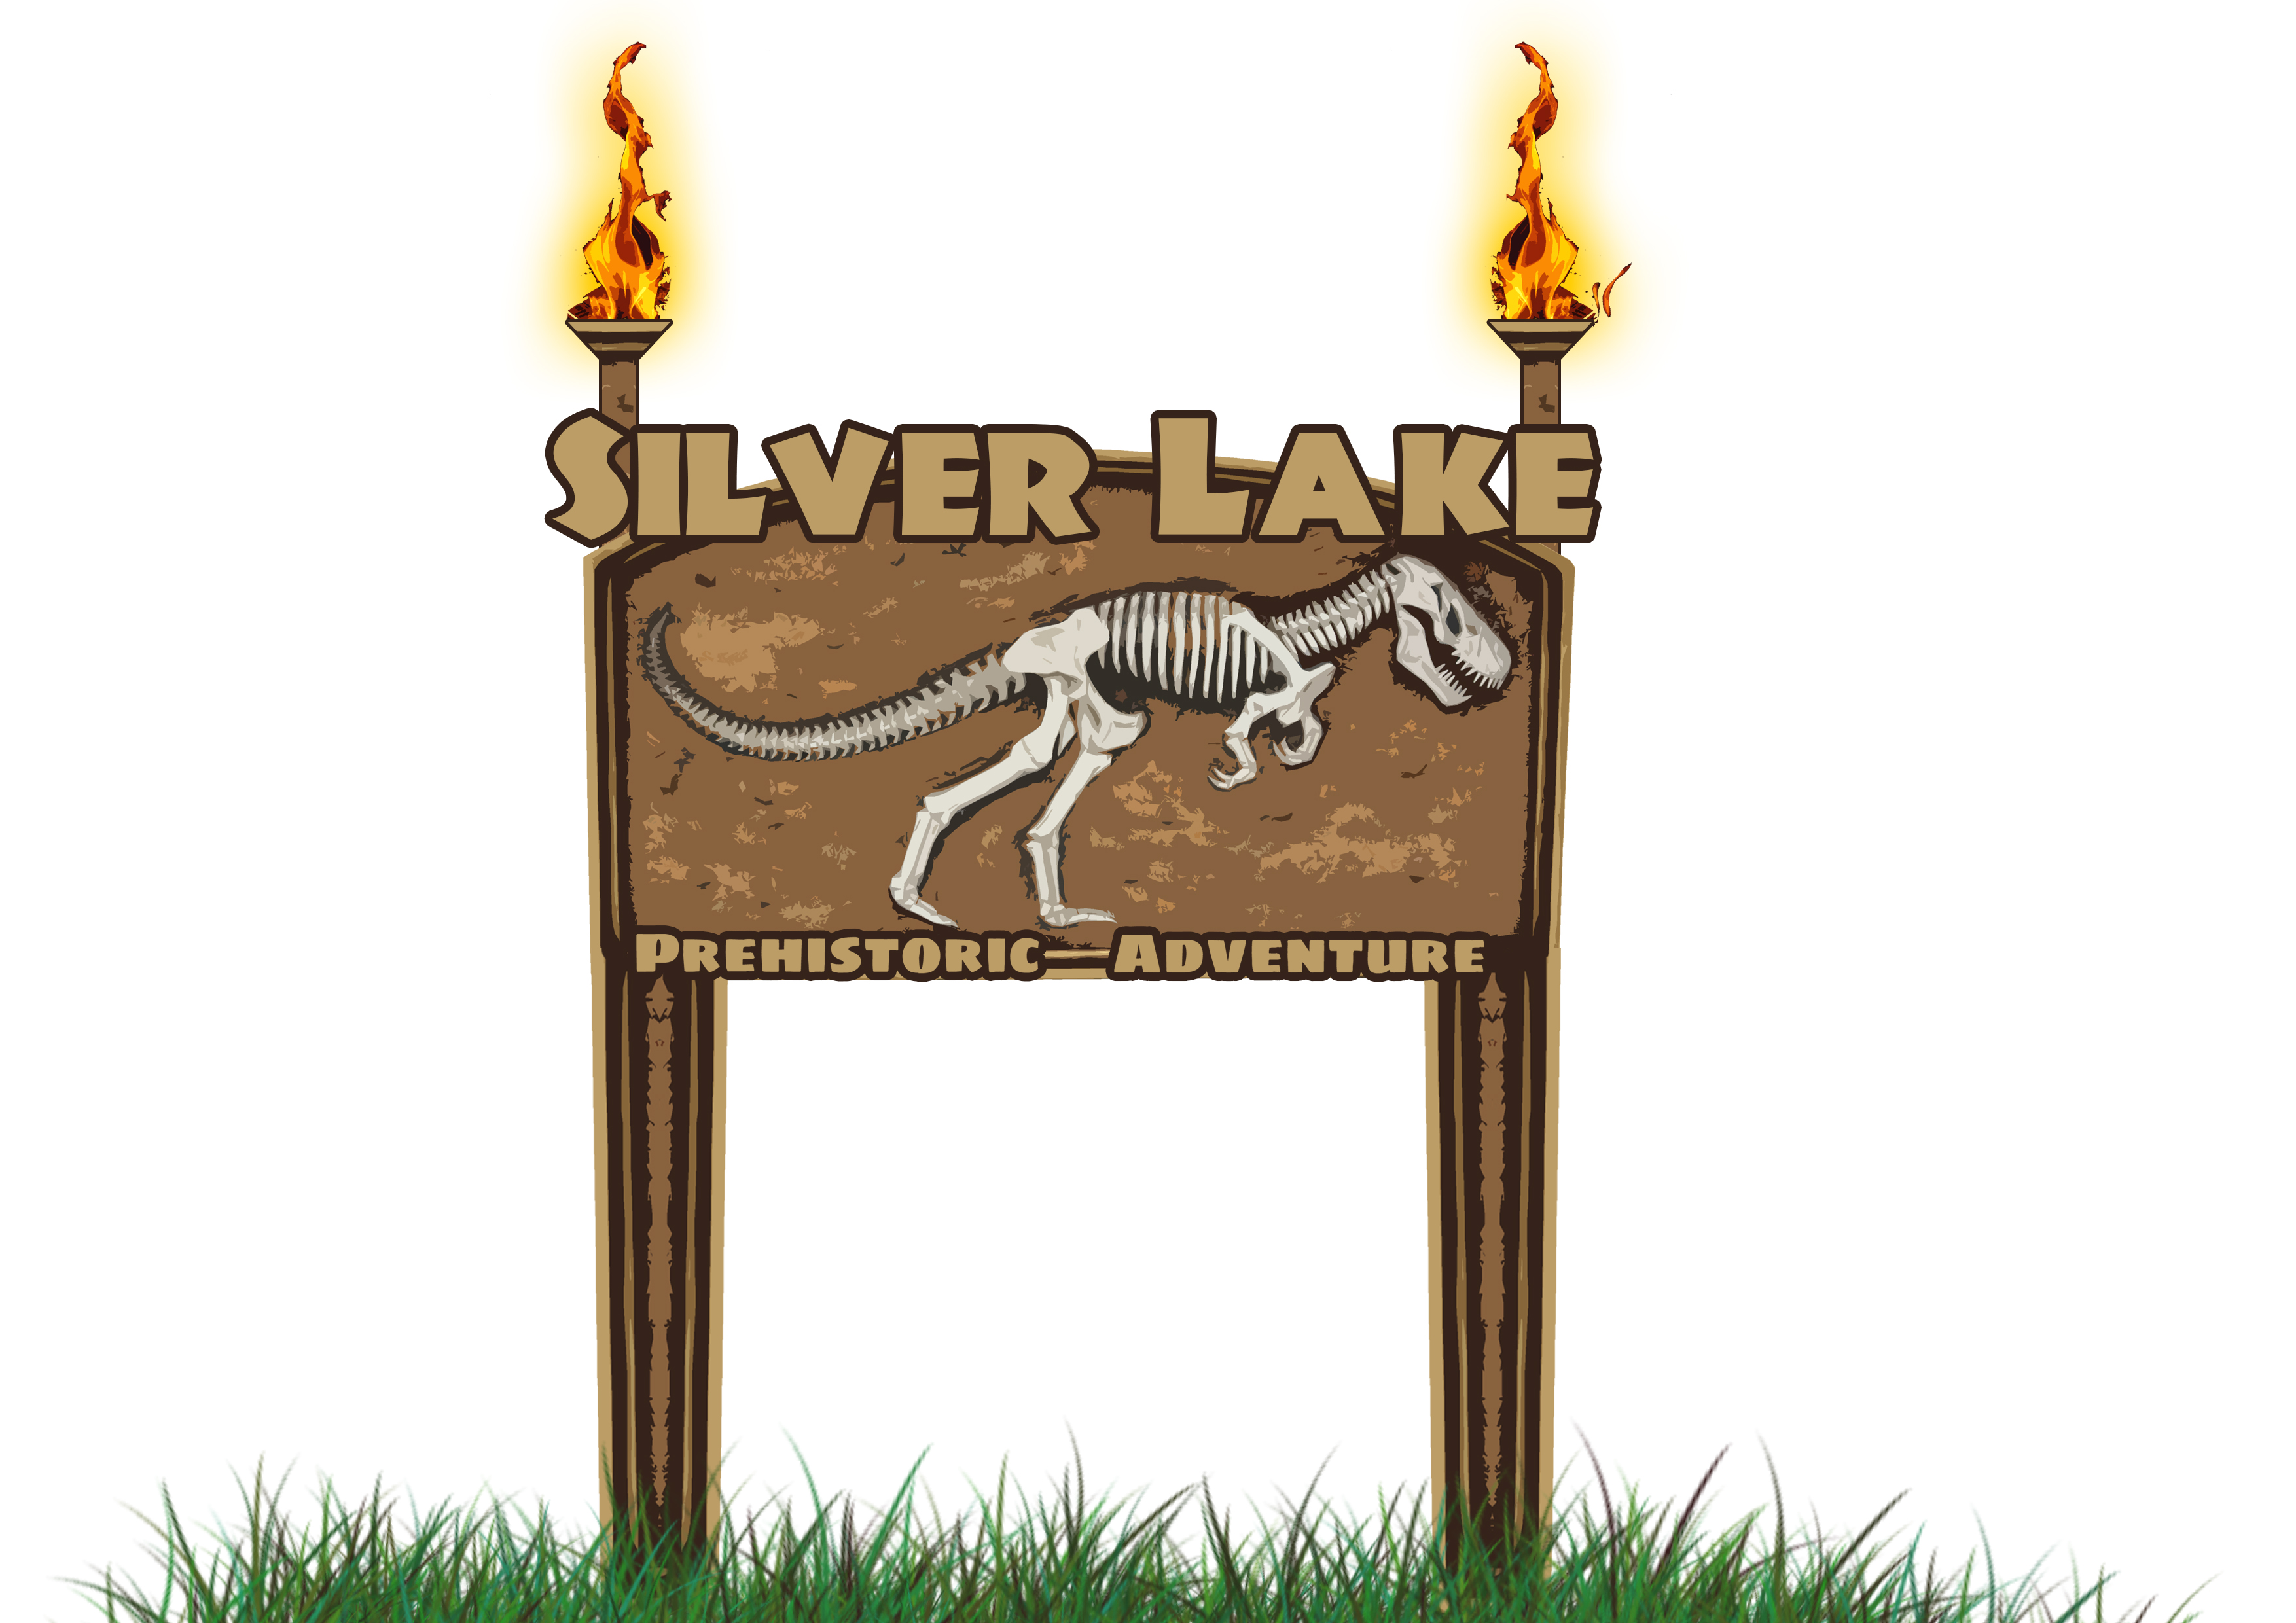 Silver Lake promotional materials